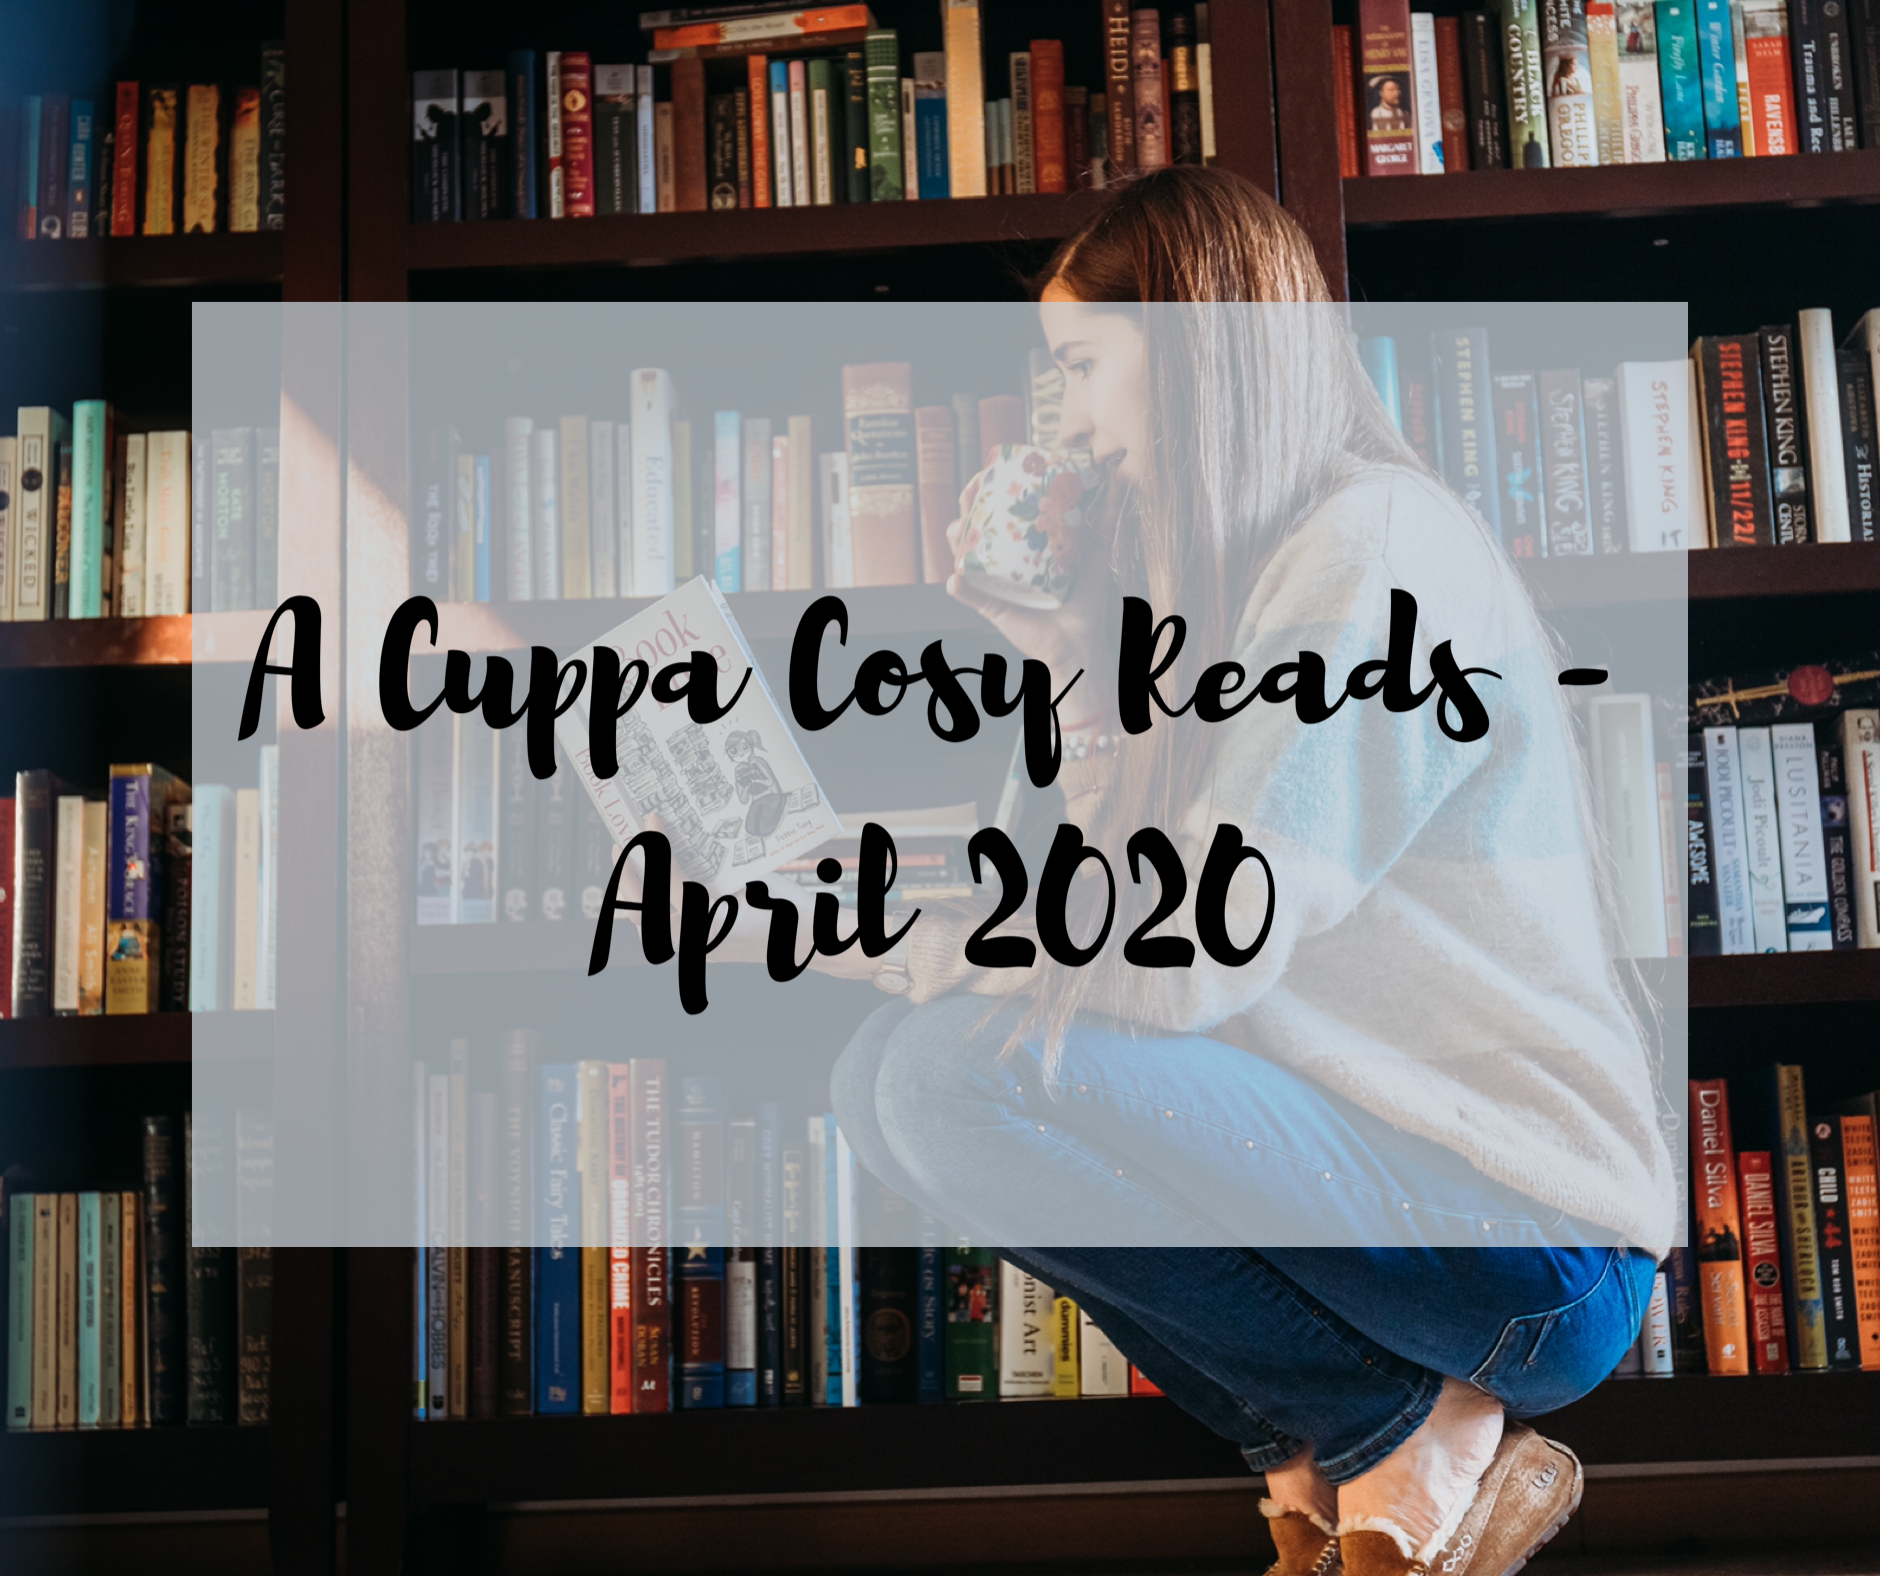 A Cuppa Cosy Reads - February 2021